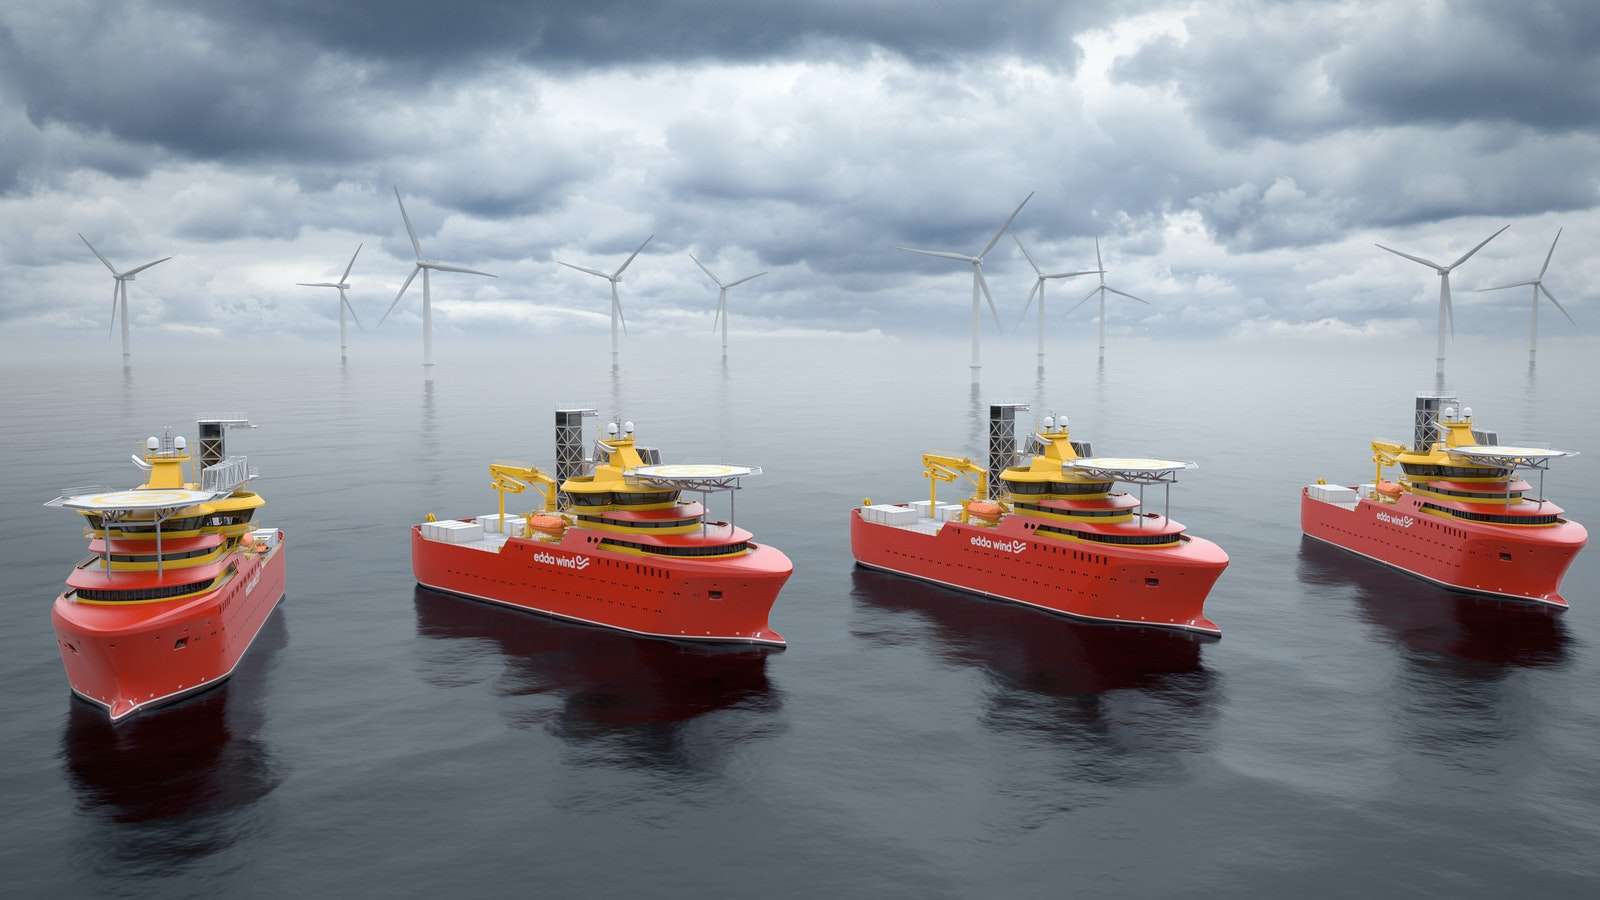 Edda Wind orders two additional CSOVs and prepares for initial public offering